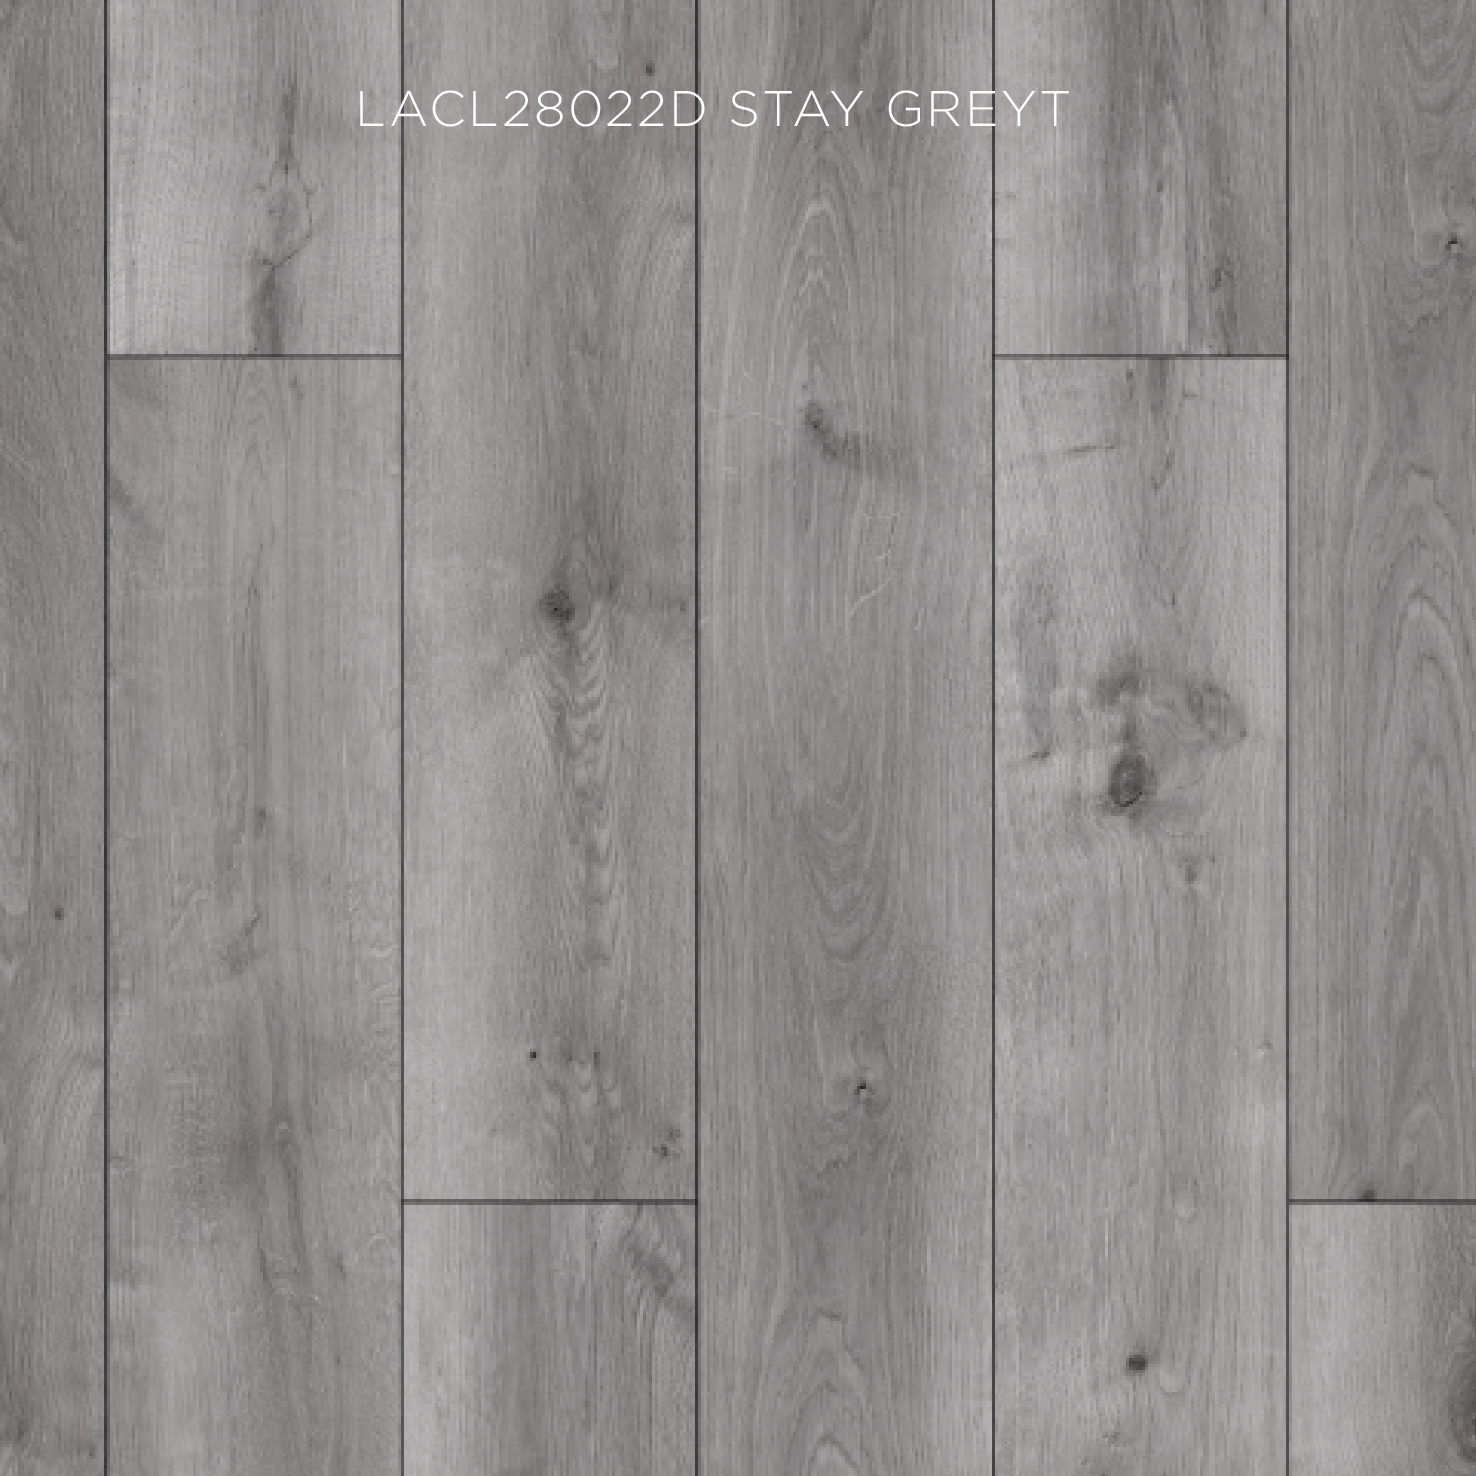 LACL 28022D Stay Greyt